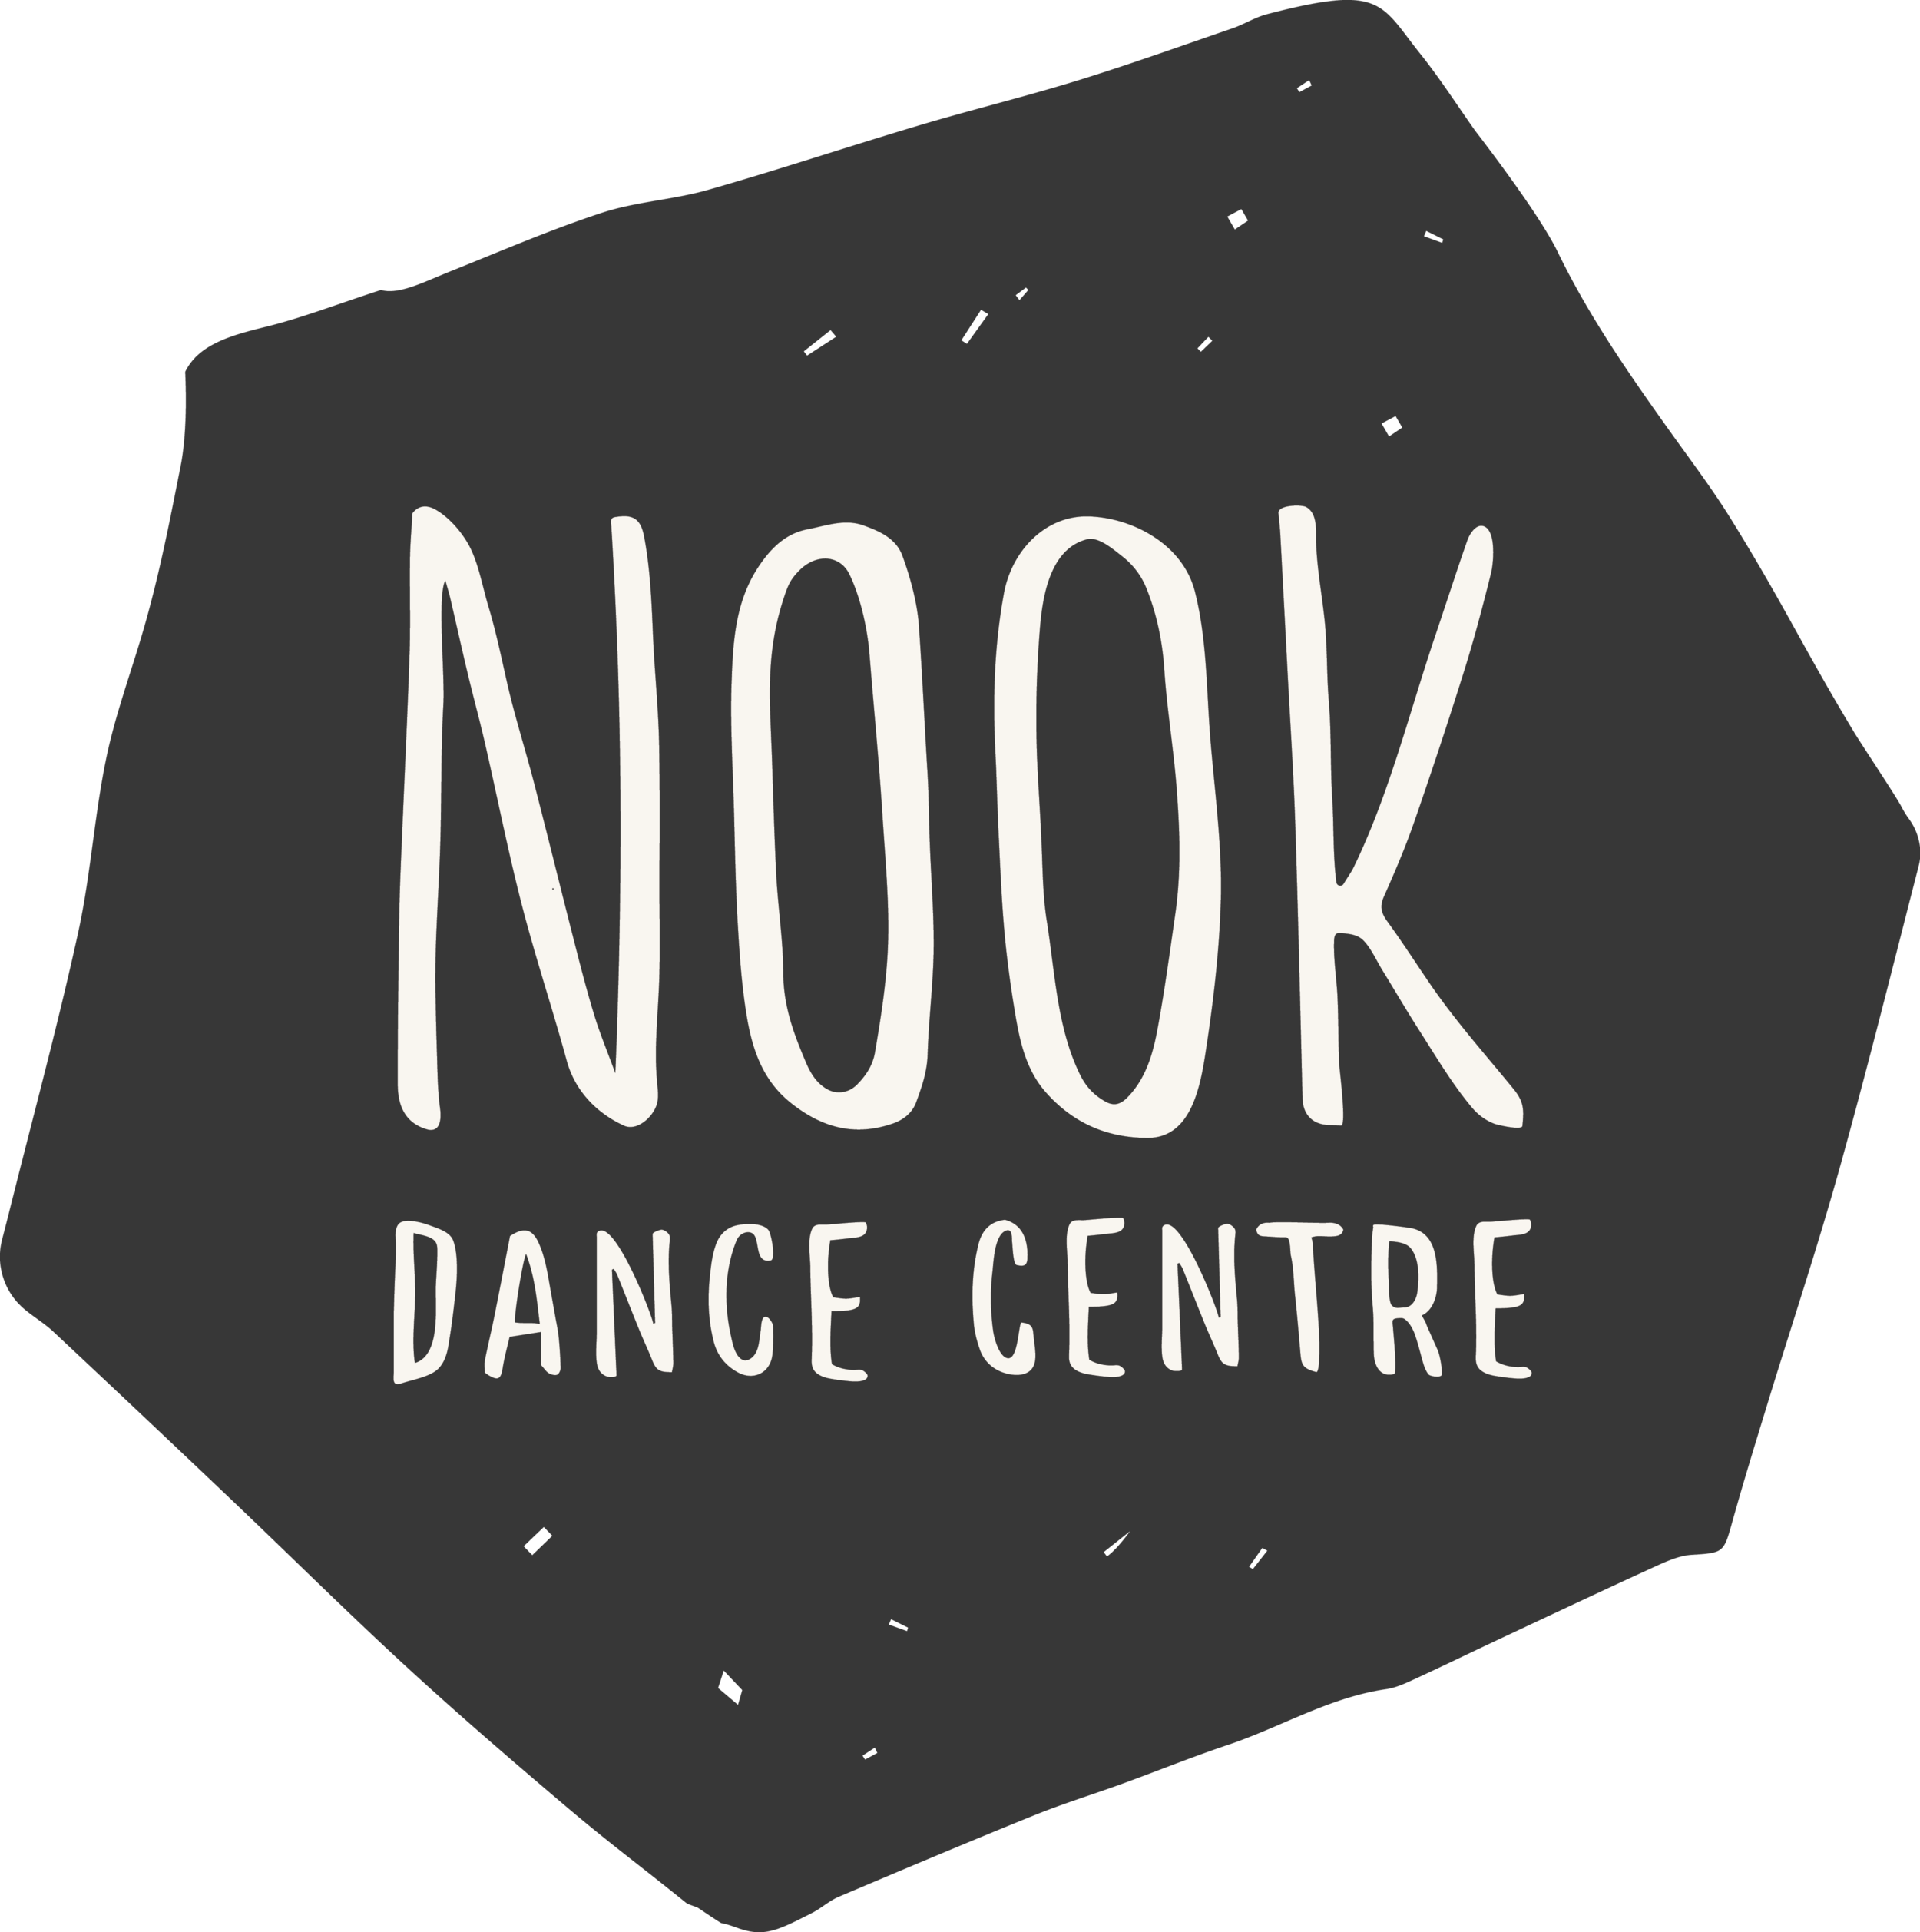 Nook Logo_Shape_Mstr Charcoal and White.png